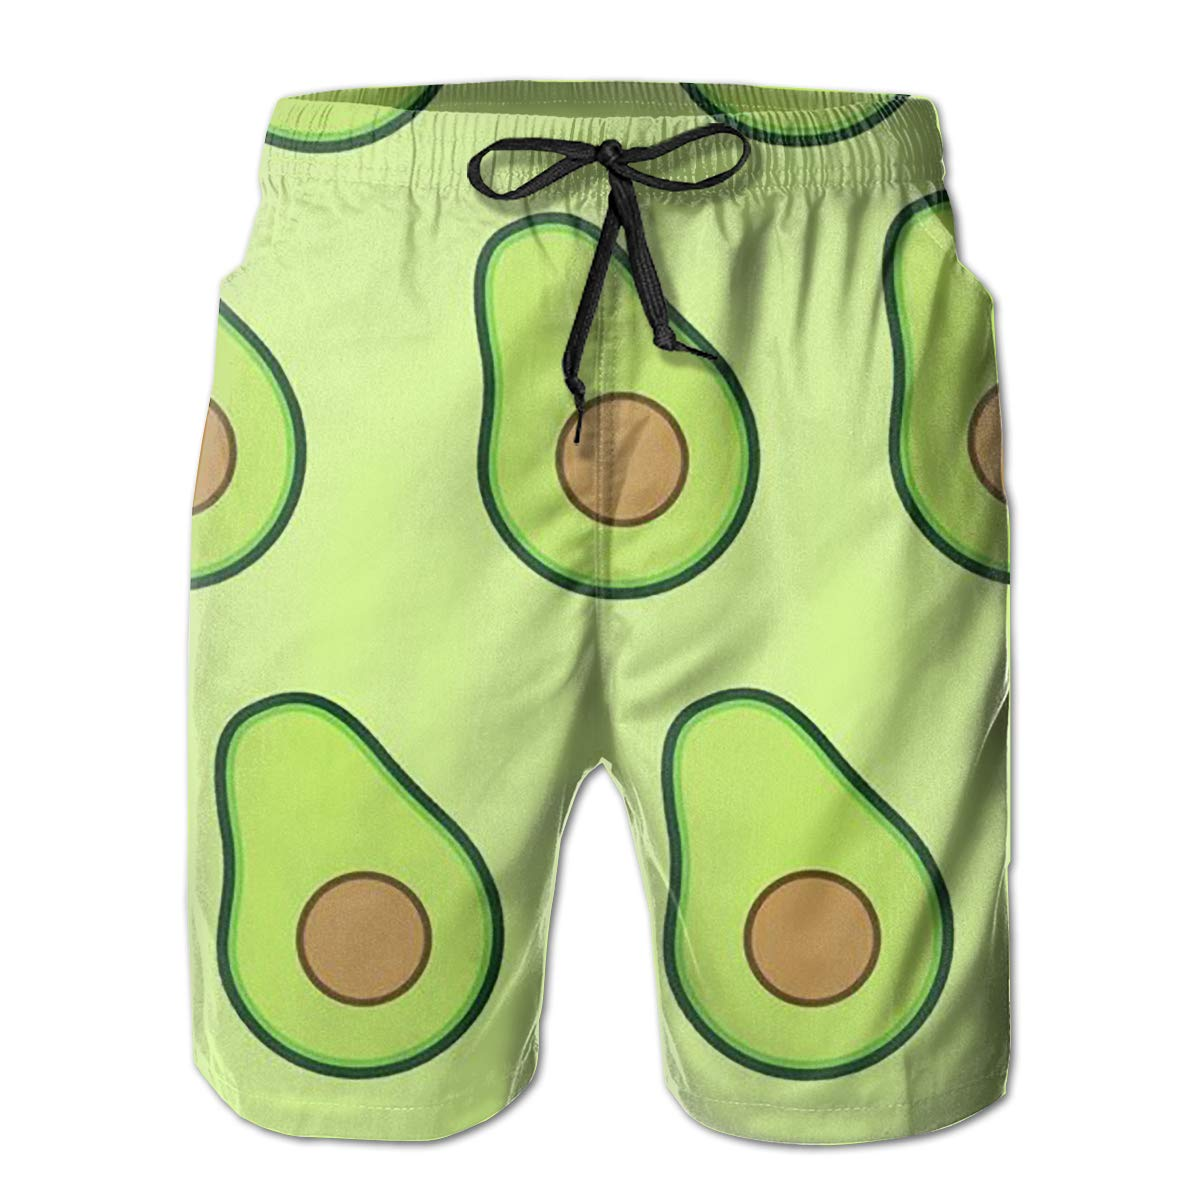 Wexzss Avocado Funny Summer Quick-Drying Swim Trunks Beach Shorts Cargo Shorts